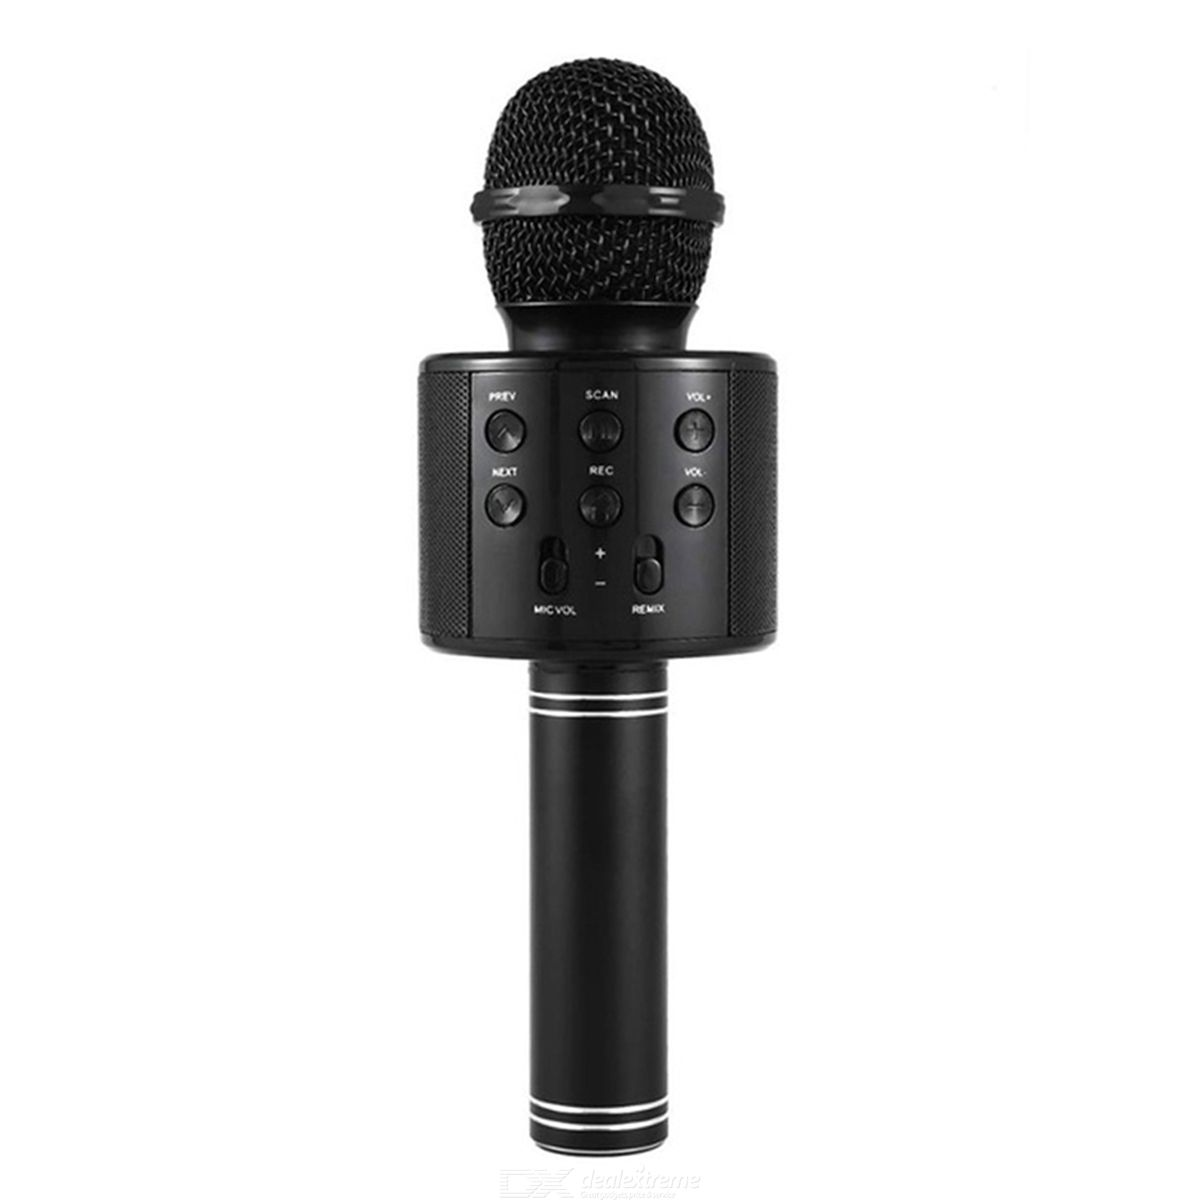 VRrobot WS858 Handheld Bluetooth Wireless karaoke Microphone with USB, 3.5mm, TF - Free shipping - DealExtreme